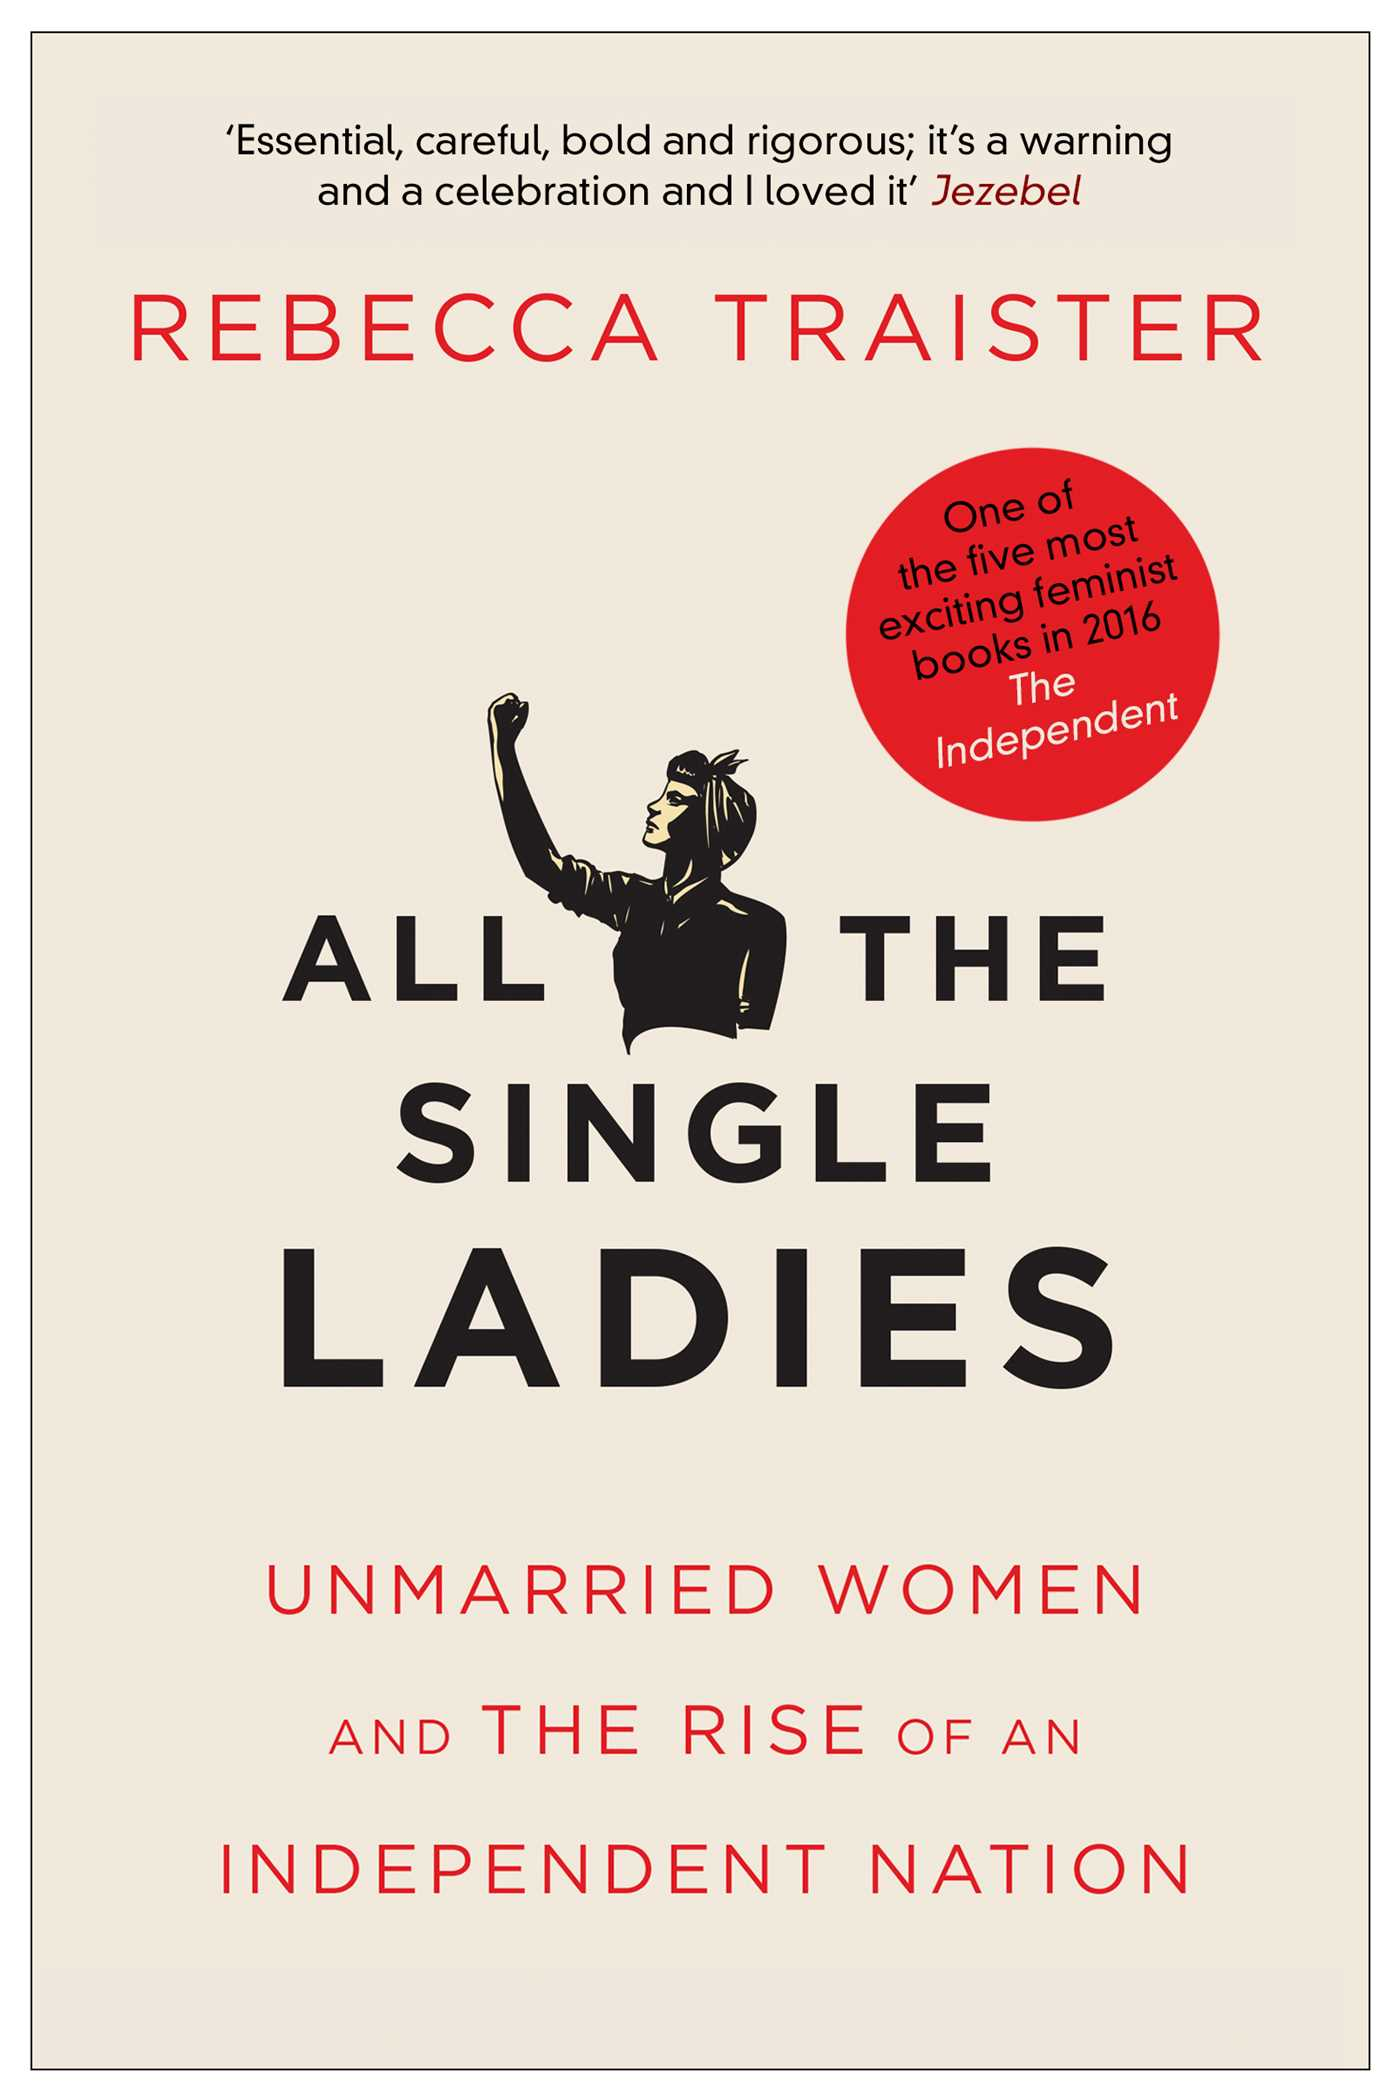 rebecca single mature ladies A nuanced investigation into the sexual, economic, and emotional lives of women in america, this singularly triumphant work (los angeles times) by rebecca traister the most brilliant voice on feminism in the country (anne lamott) is sure to b.